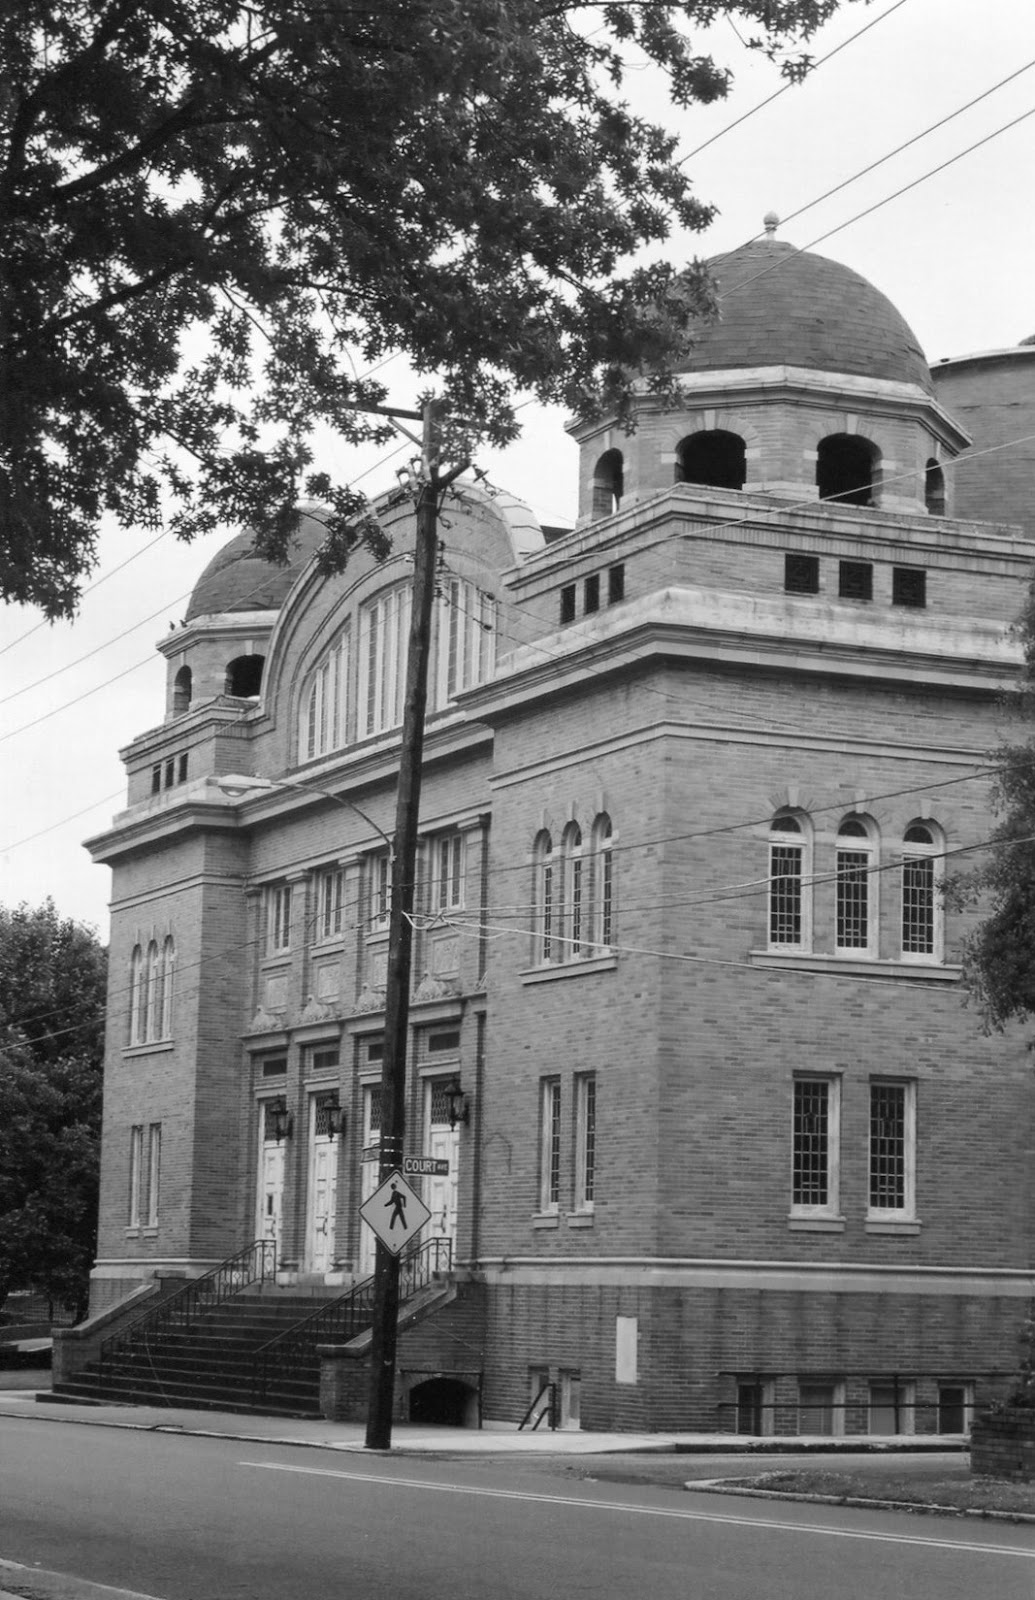 the building s close proximity to both court avenue the side street and bellevue boulevard indicates it was built at a time when a major portion of its